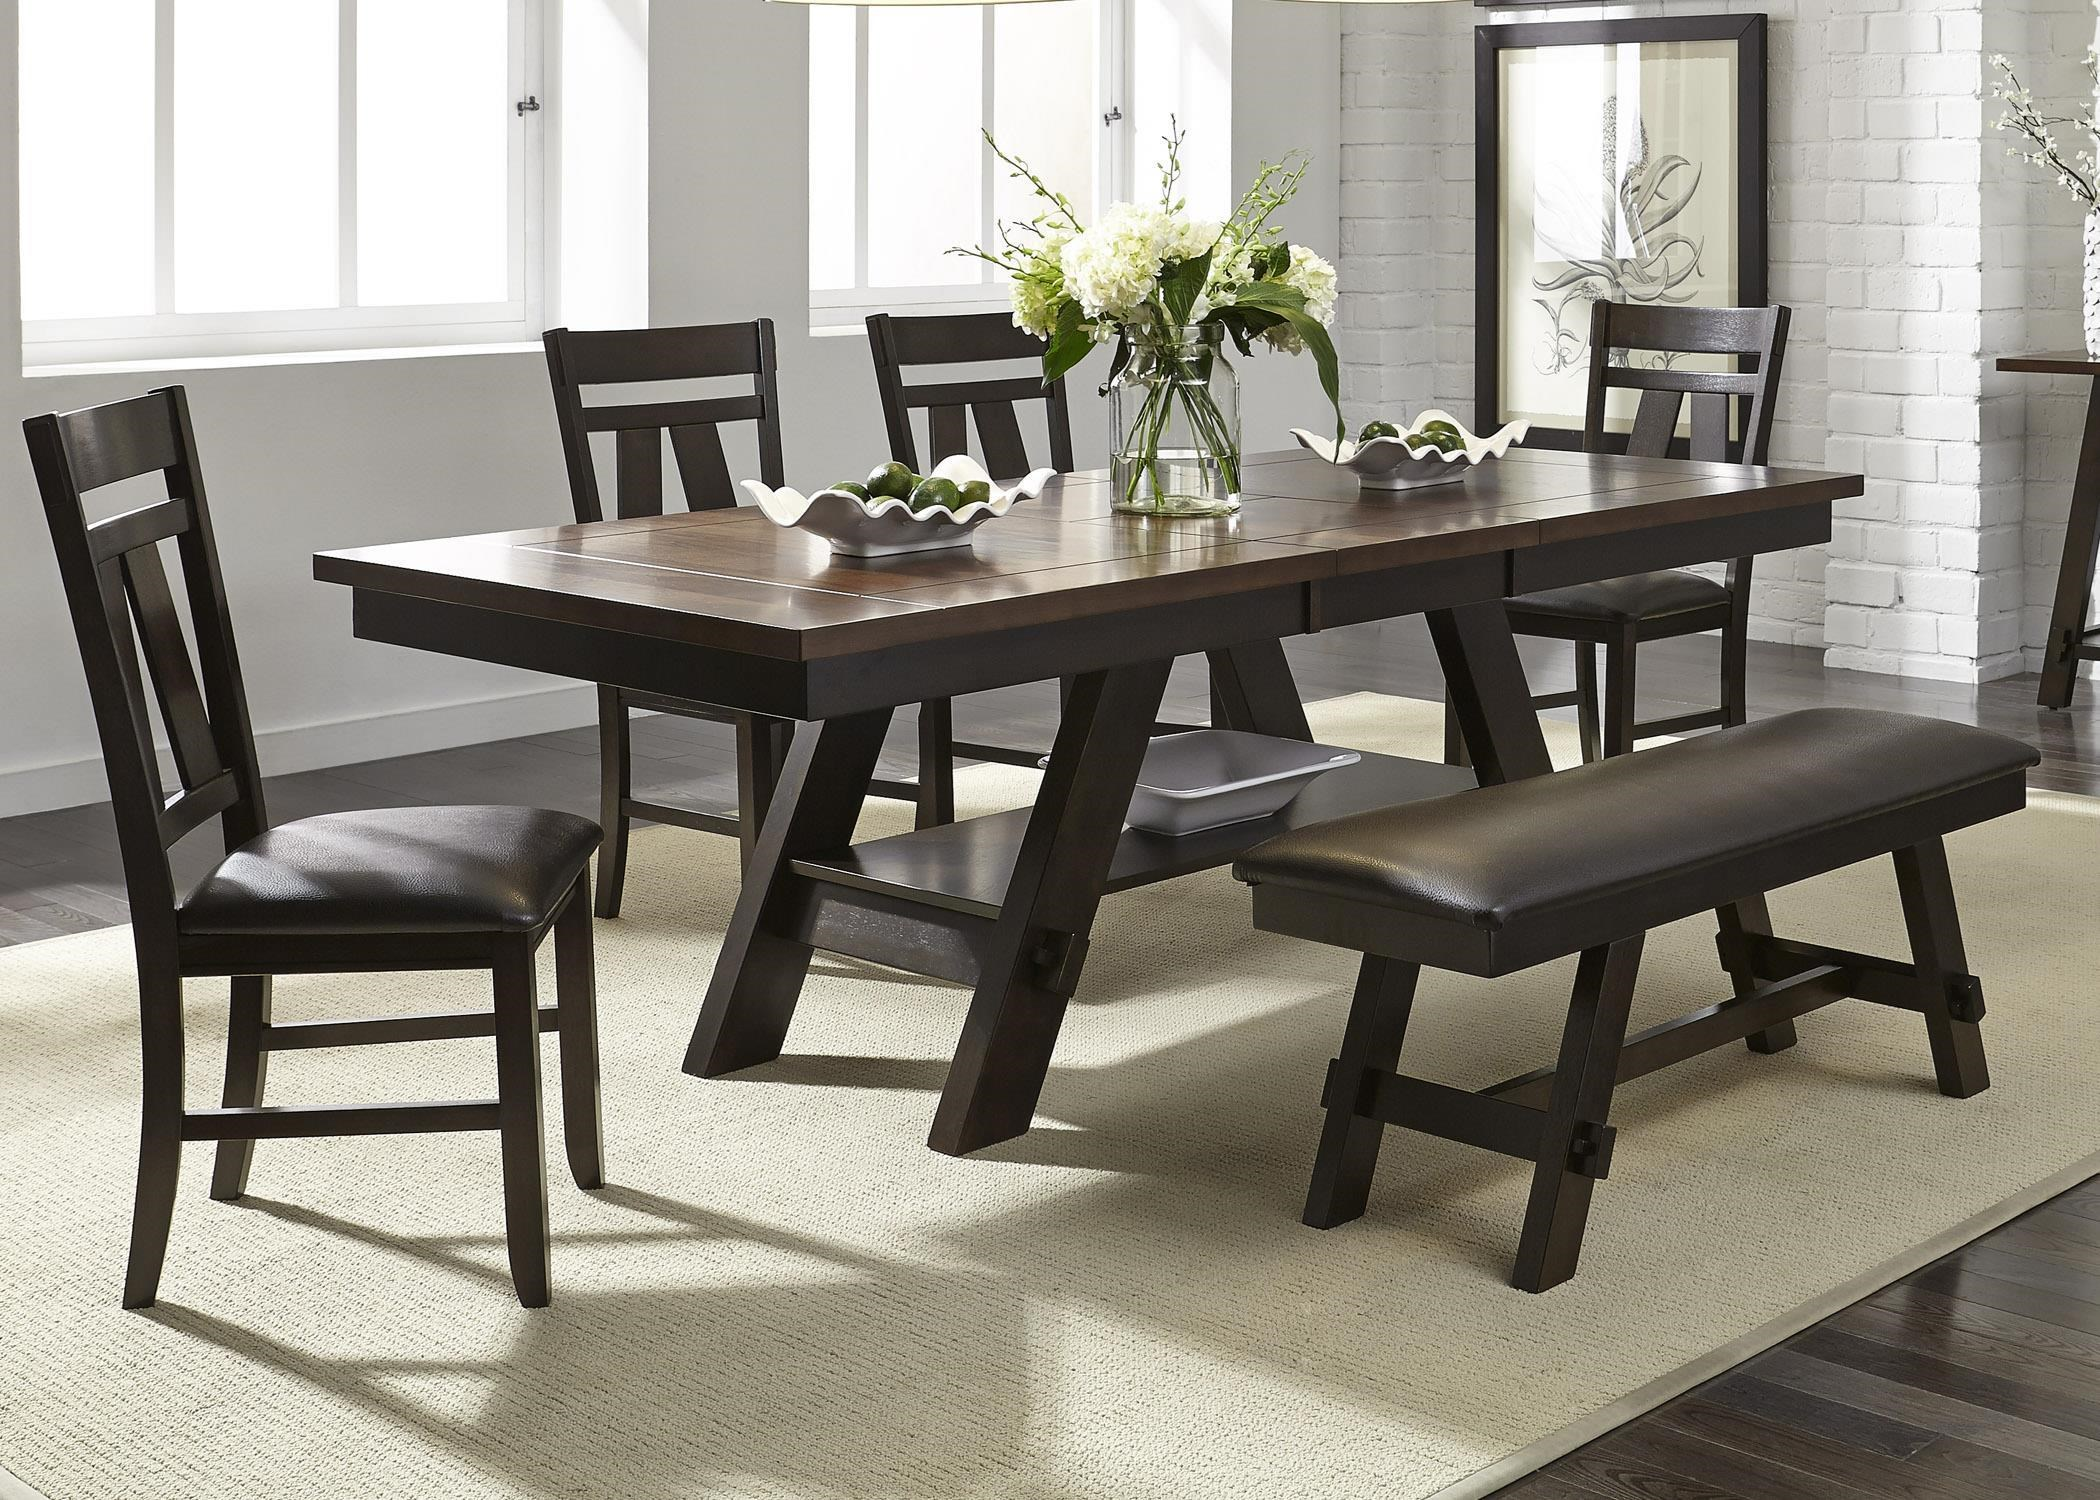 liberty dining chairs lower back chair support furniture lawson 5 piece set includes table